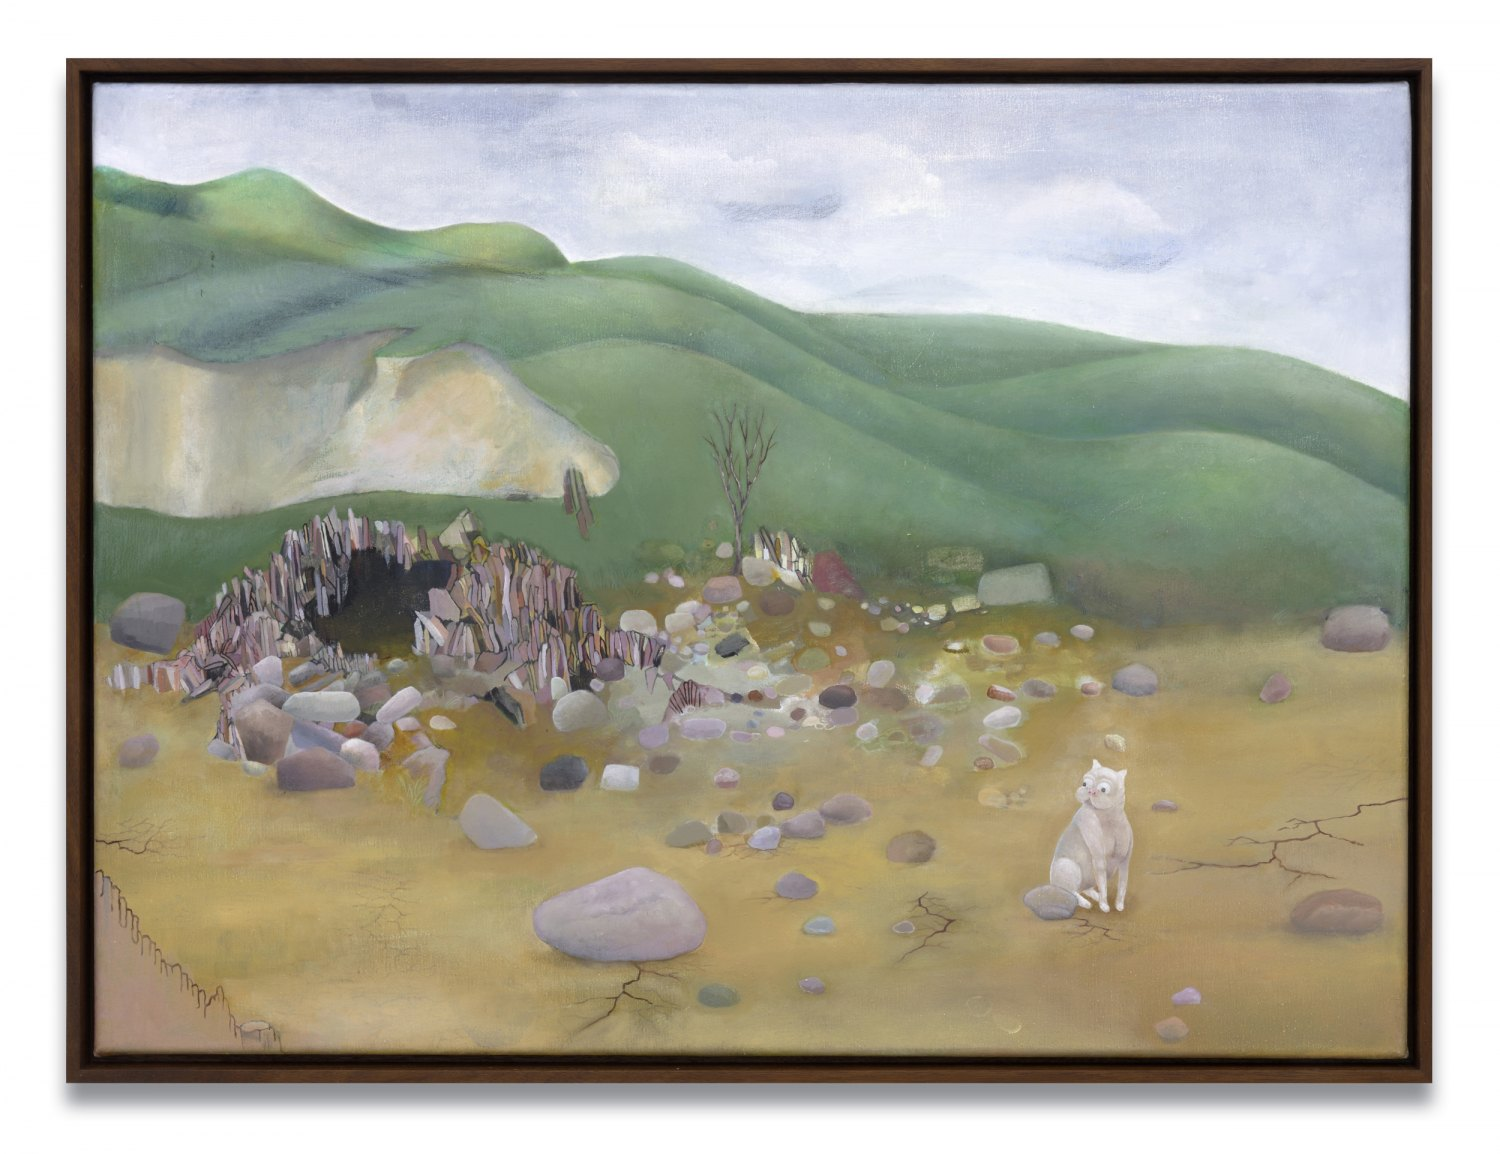 Katharina Wulff   Nach dem Dreißigjährigen Krieg / After the Thirty Years' War, 2007    Oil on canvas,  56 × 76 cm